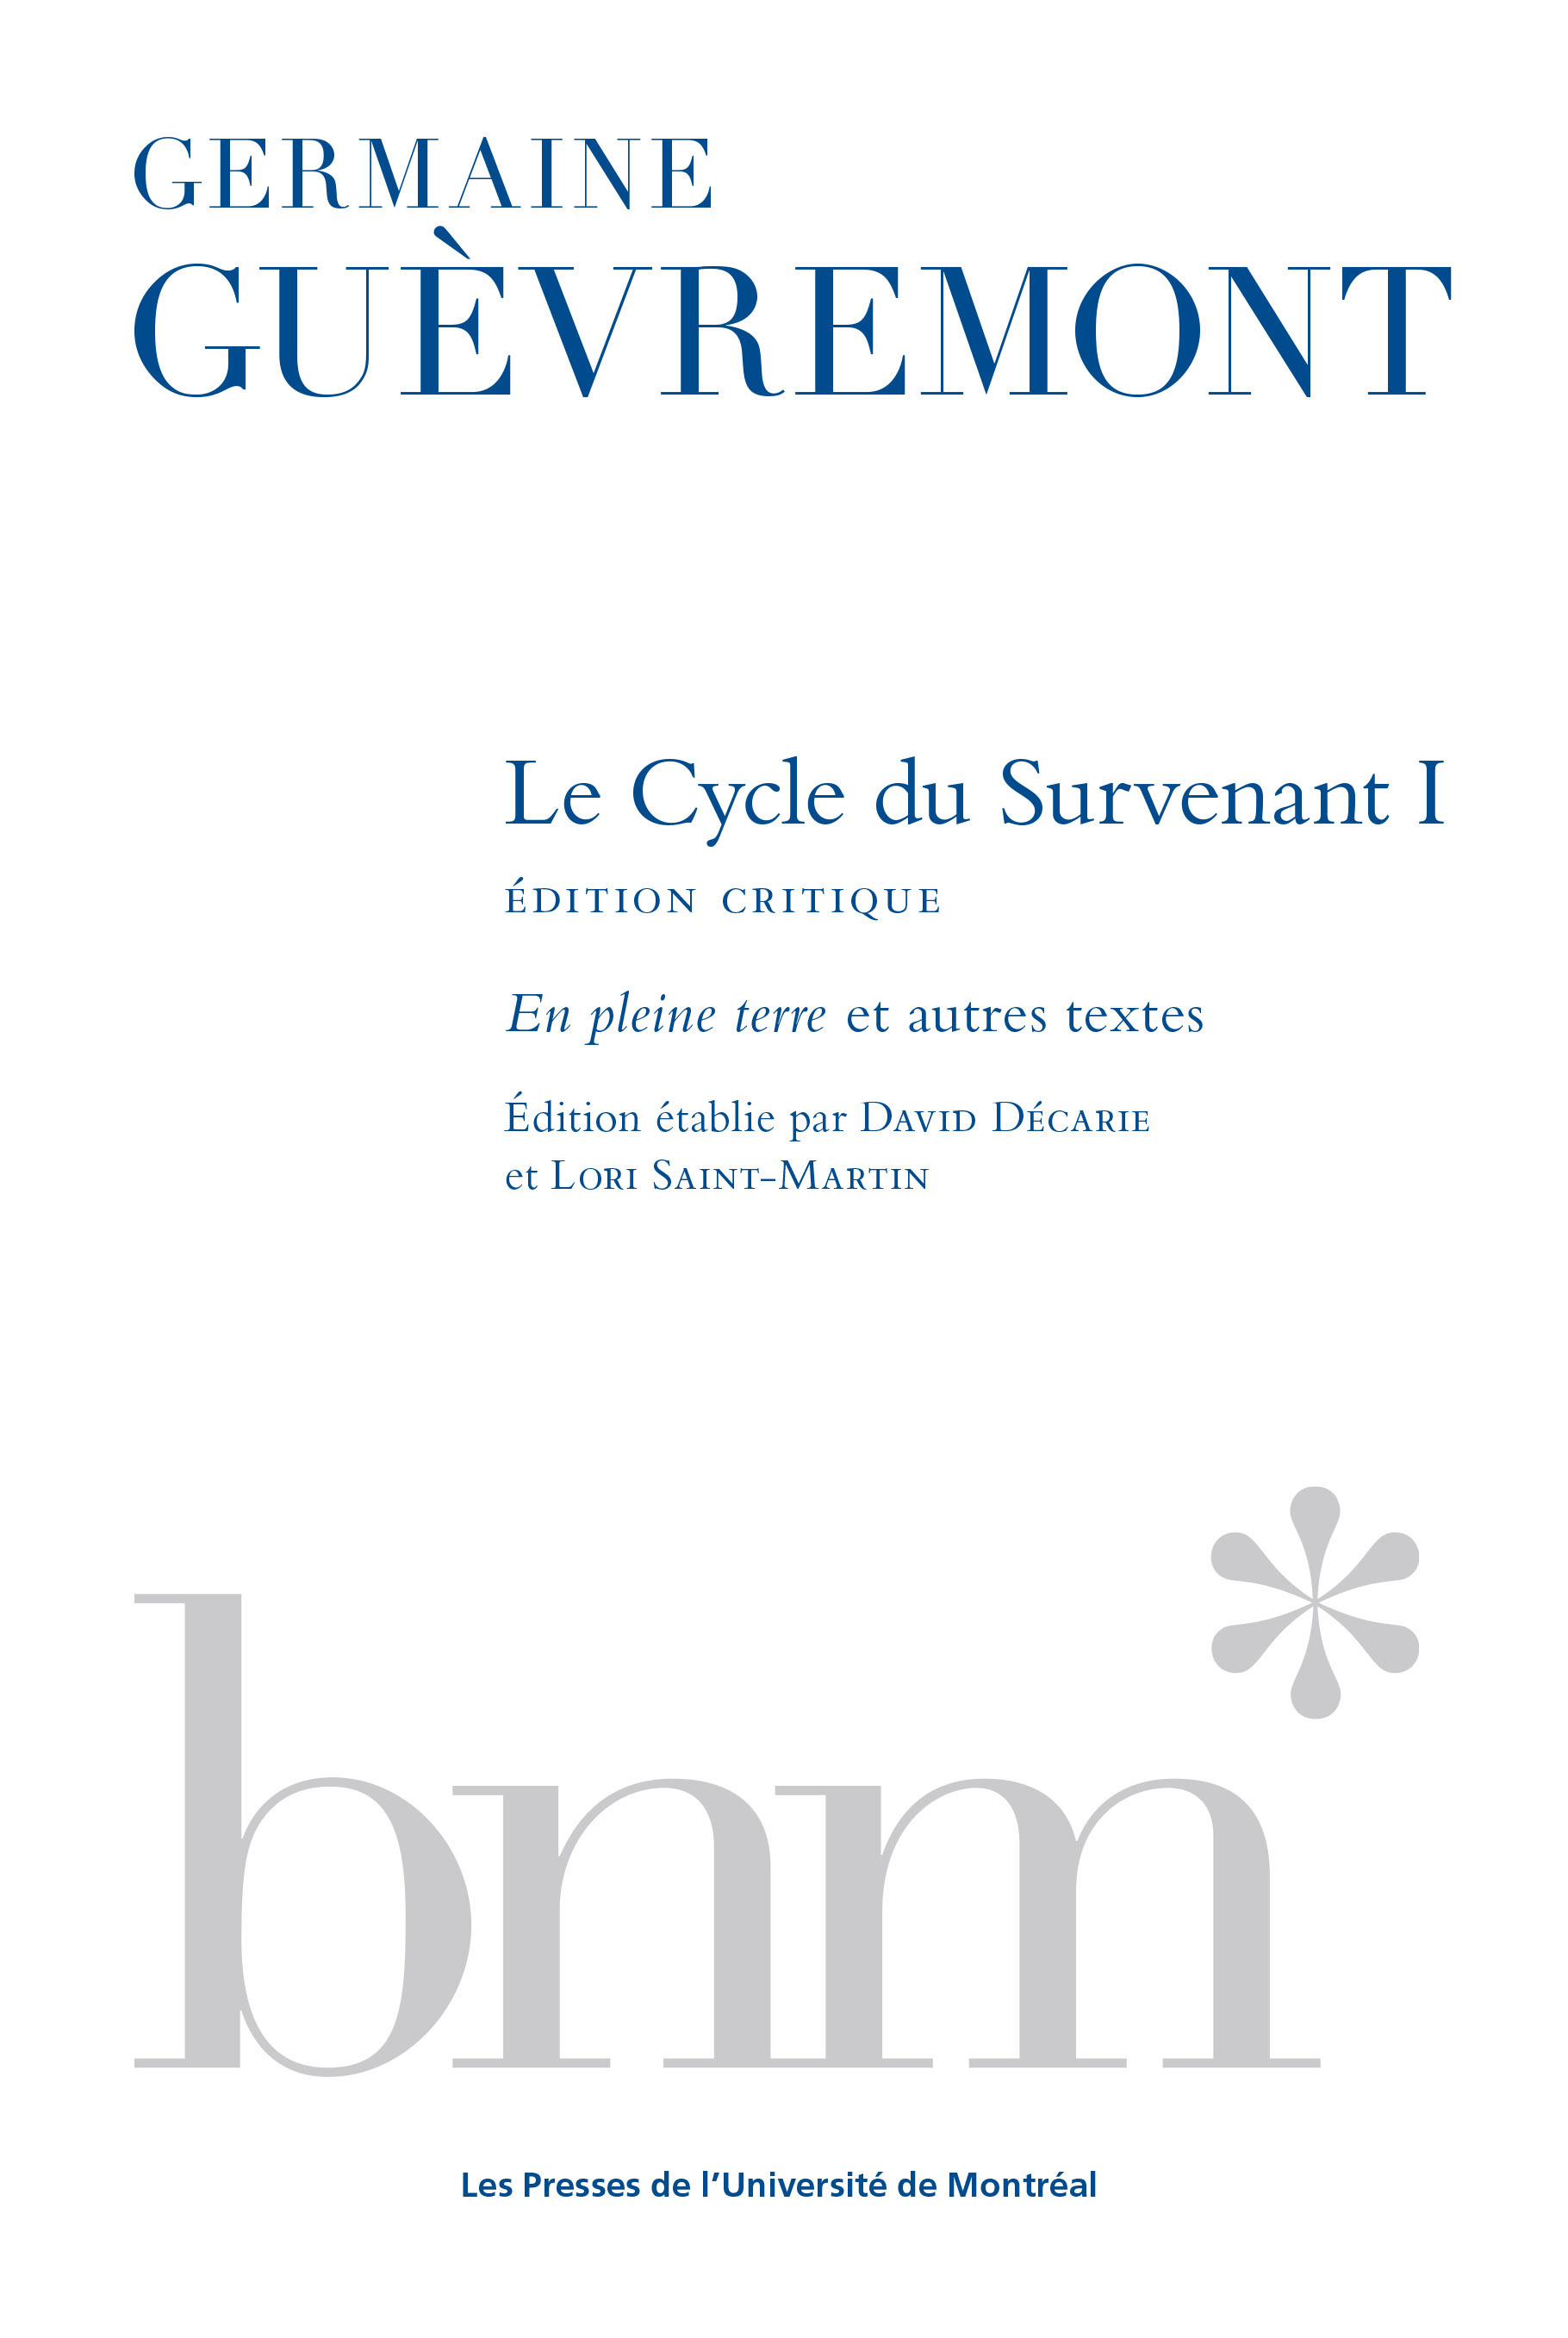 Le Cycle du Survenant 1, édition critique